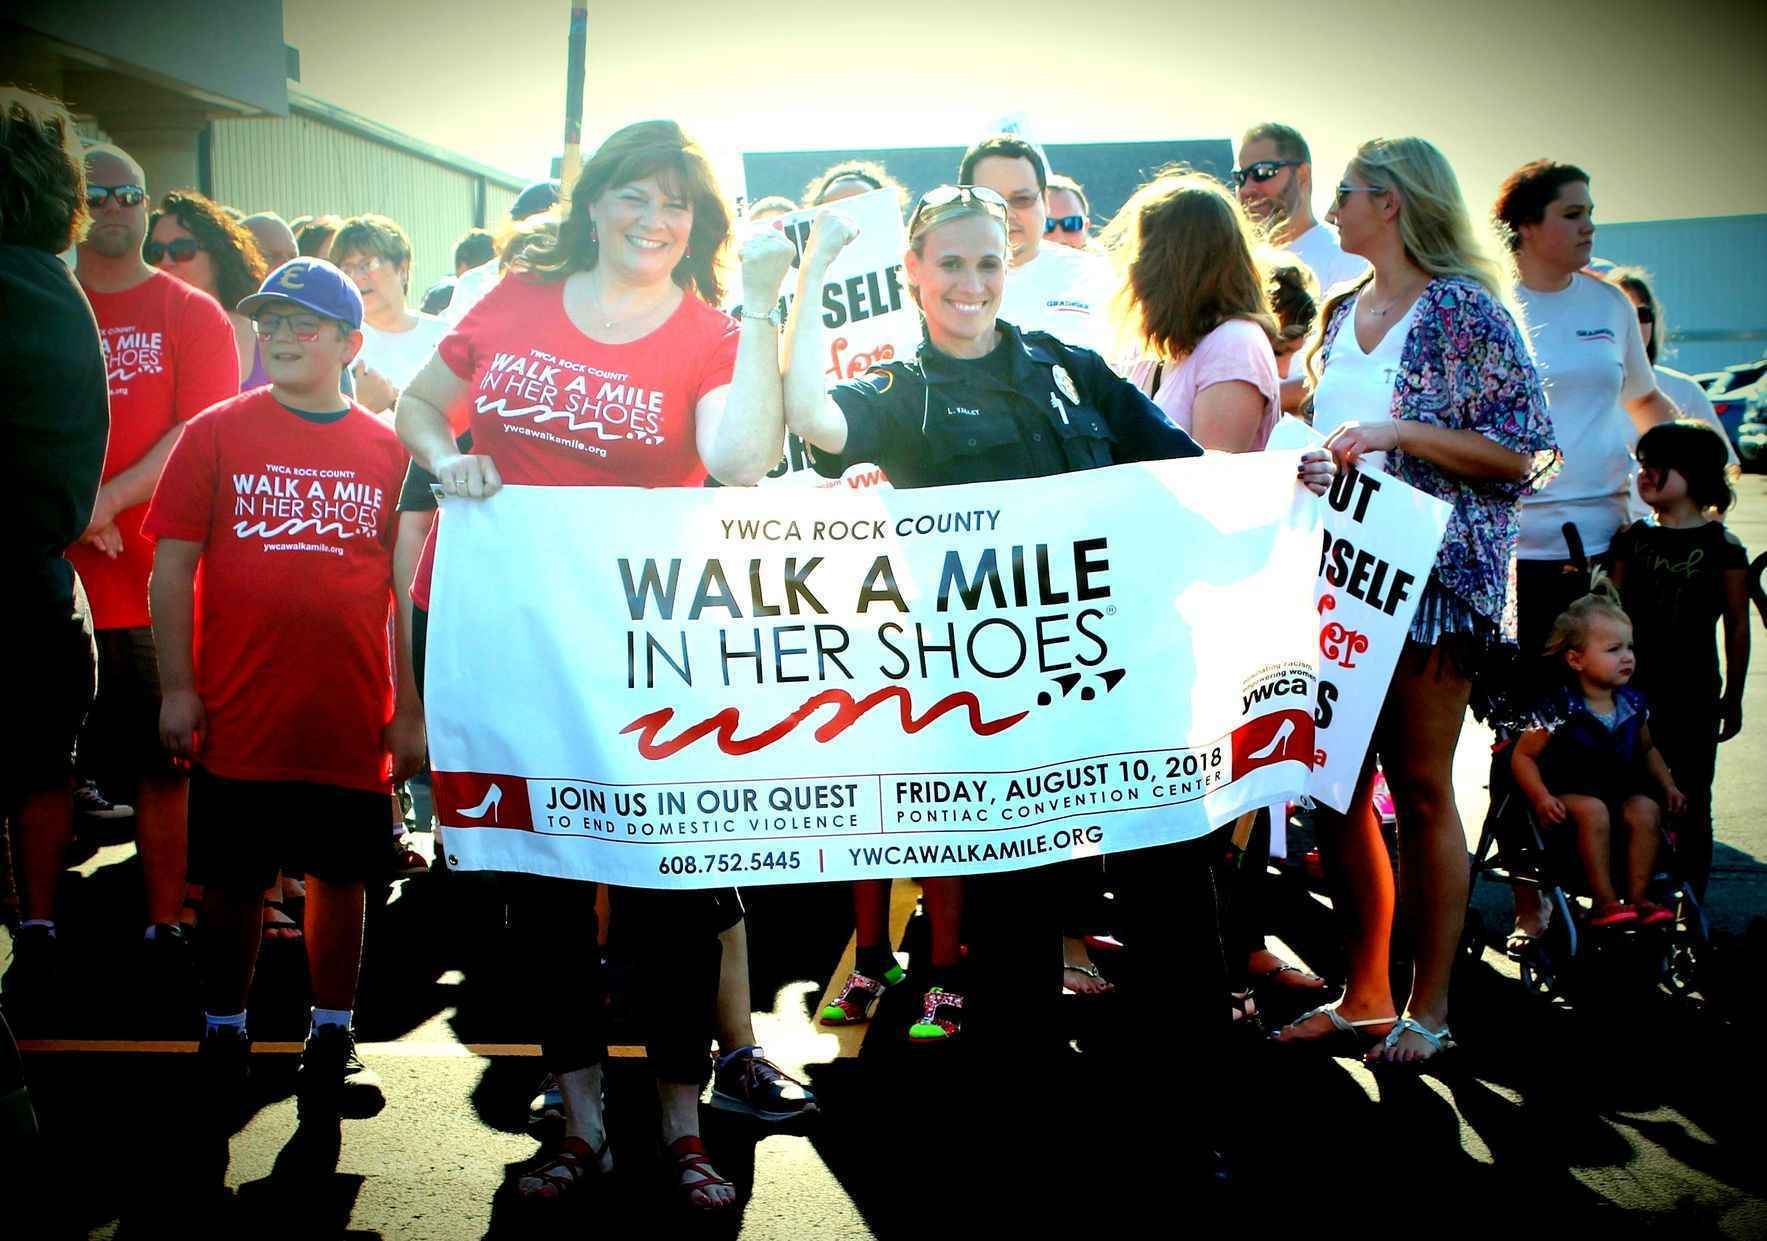 Walk A Mile In Her Shoes 2020 image